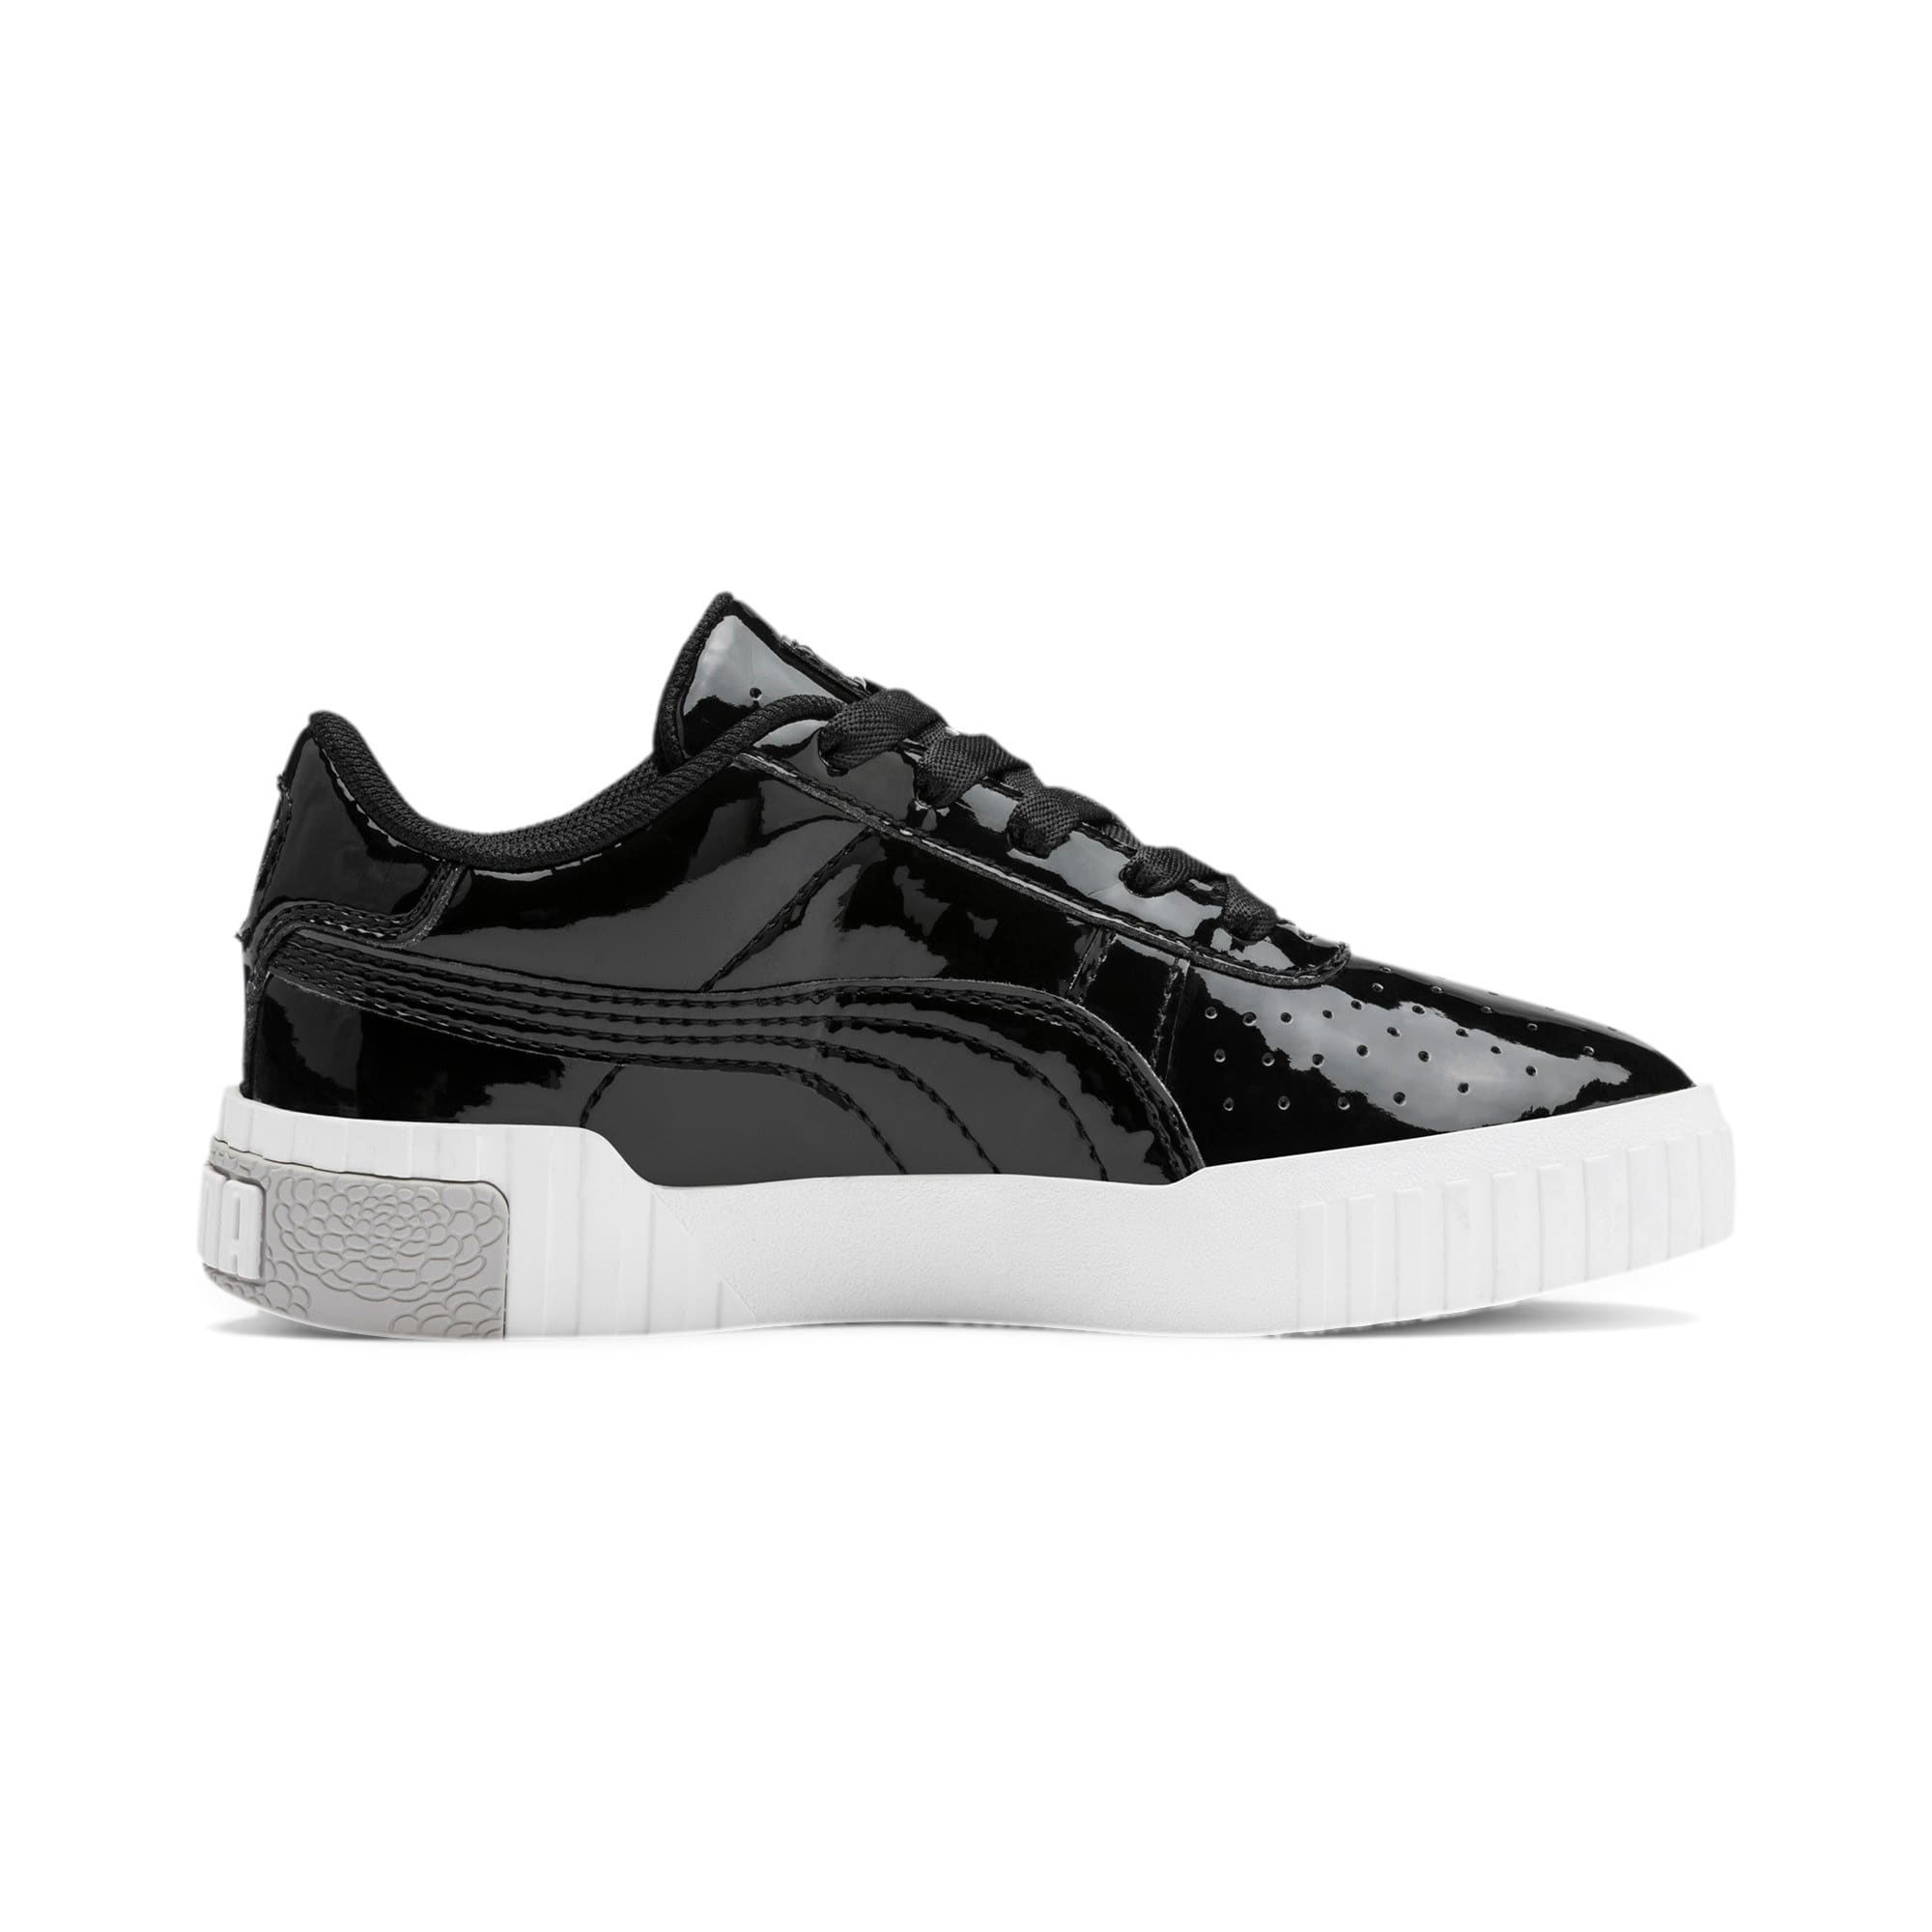 Thumbnail 5 of Cali Patent Kids' Trainers, Puma Black-Puma White, medium